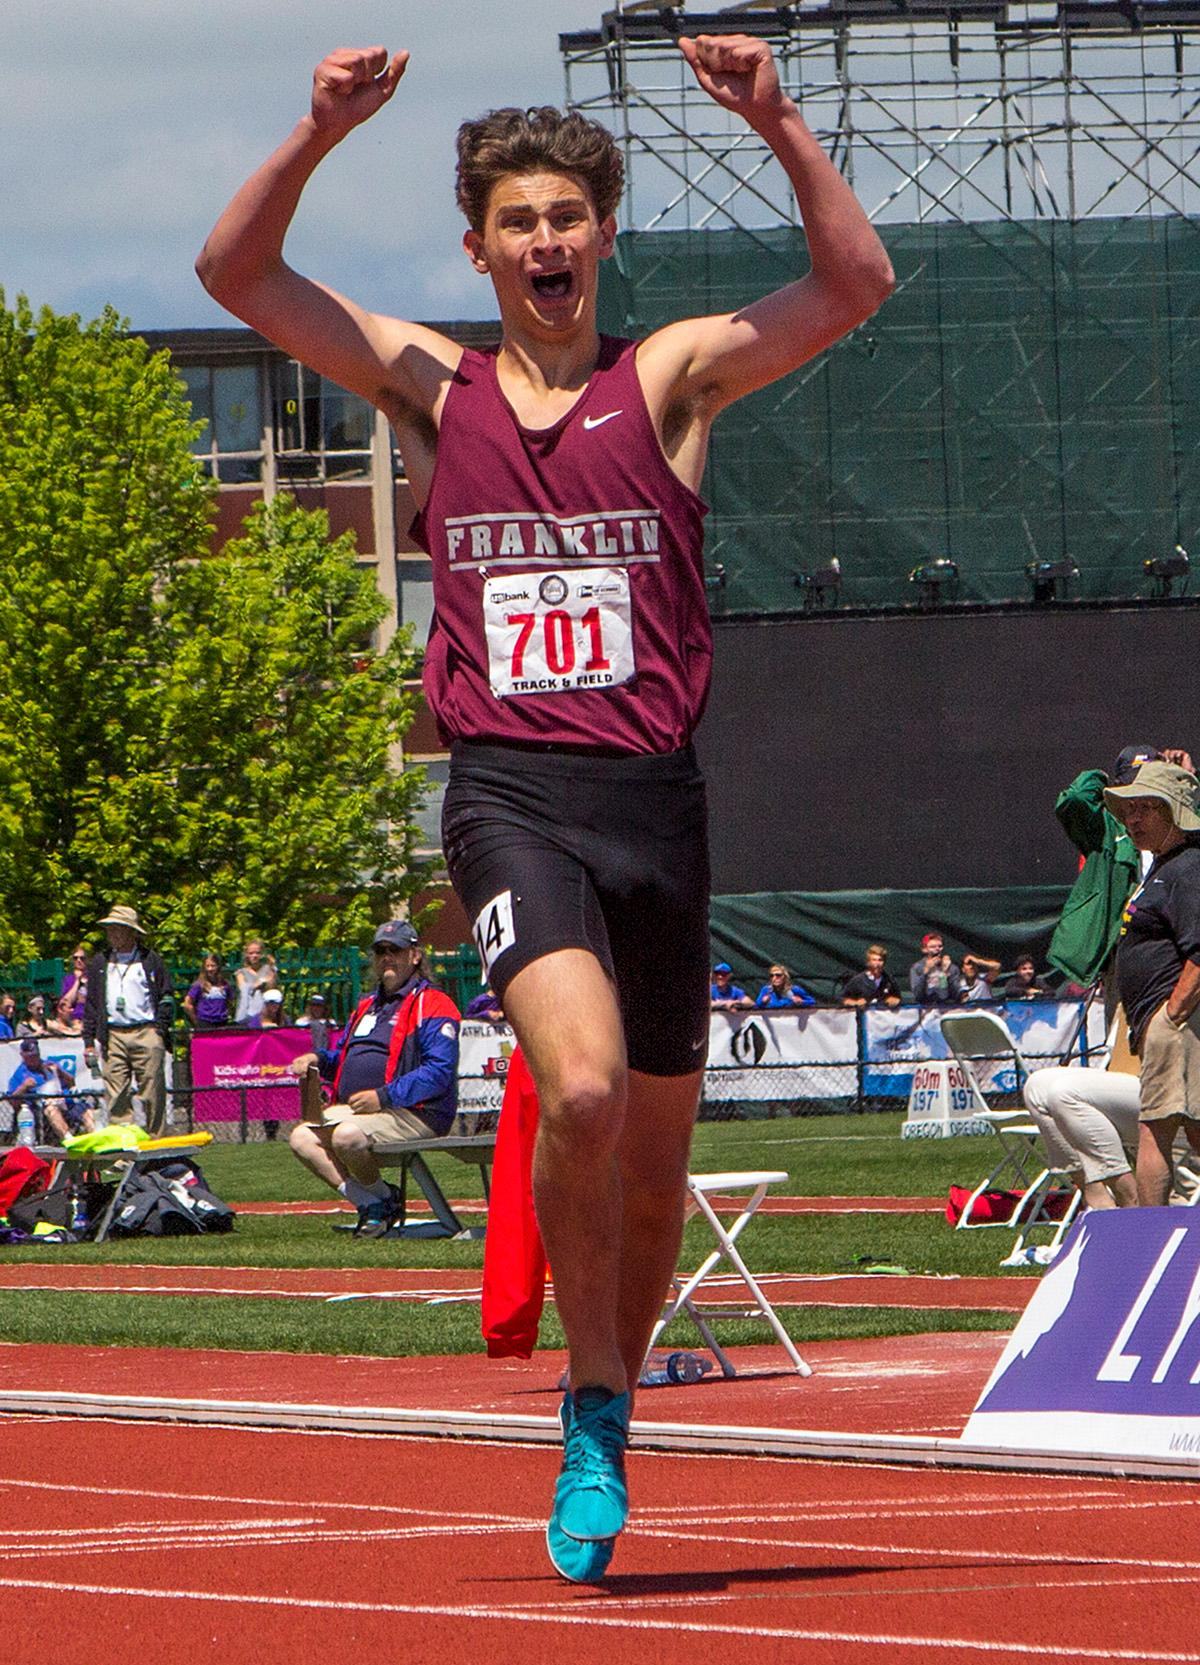 Henry Mong of Franklin wins the Boys 1500 Meter Run 6A with a time of 3:50.52 at the OSAA Track and Field State Championships at Hayward Field. Photo by Nichole Louchios, Oregon News Lab.